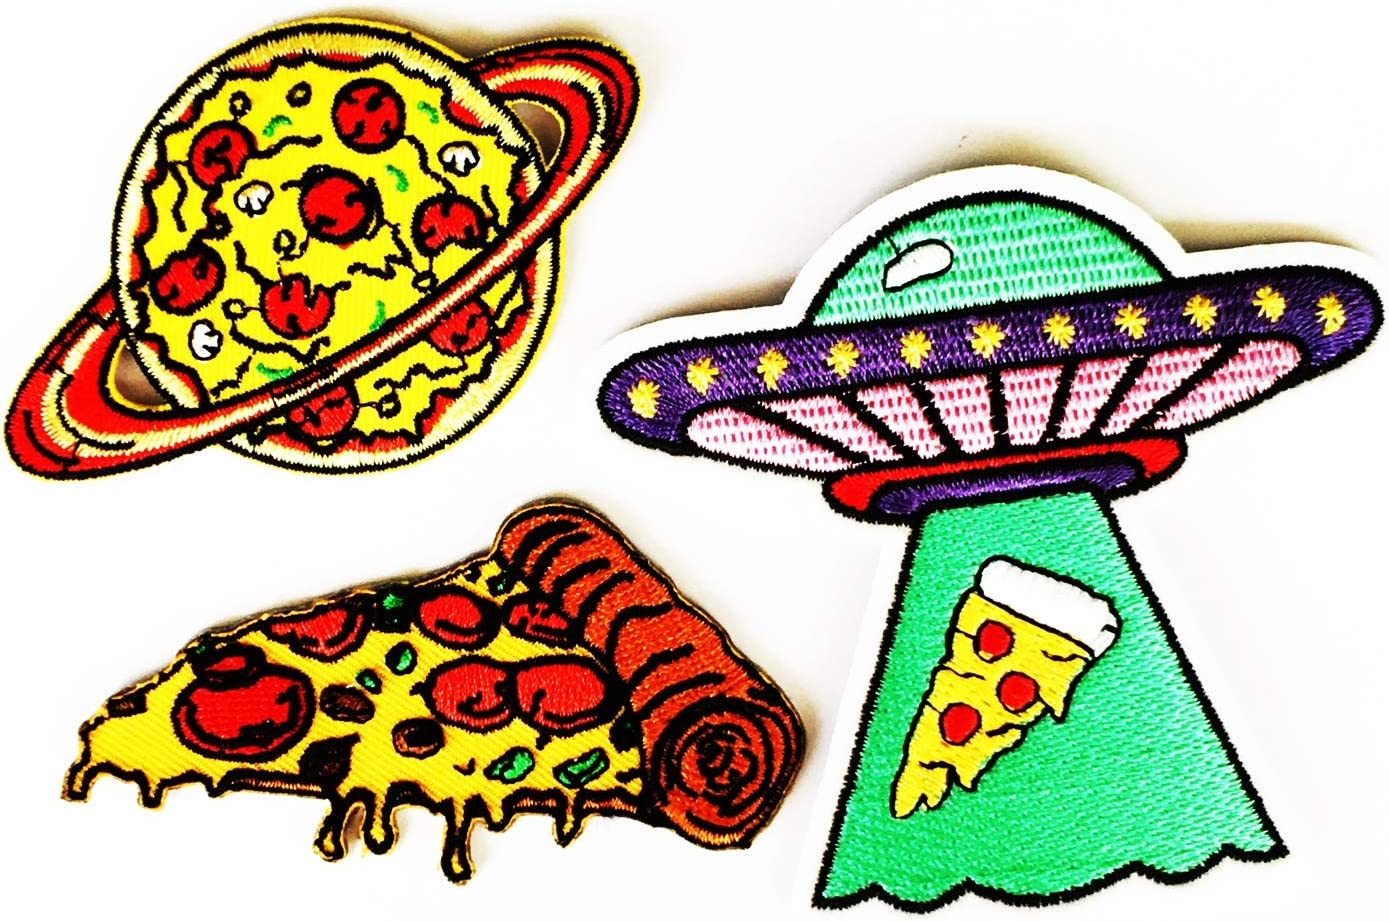 Pizza Planet Italian Earth Stars 3.2/8X2 Pizza Italian Fast Food Fun 2X3.3/8 Pizza Italian Ham Cheese UFO 3.6/8X3.4/8 inches MEGADEE Iron on Backpack Ideal for Gift (Set 3 Patch 020)